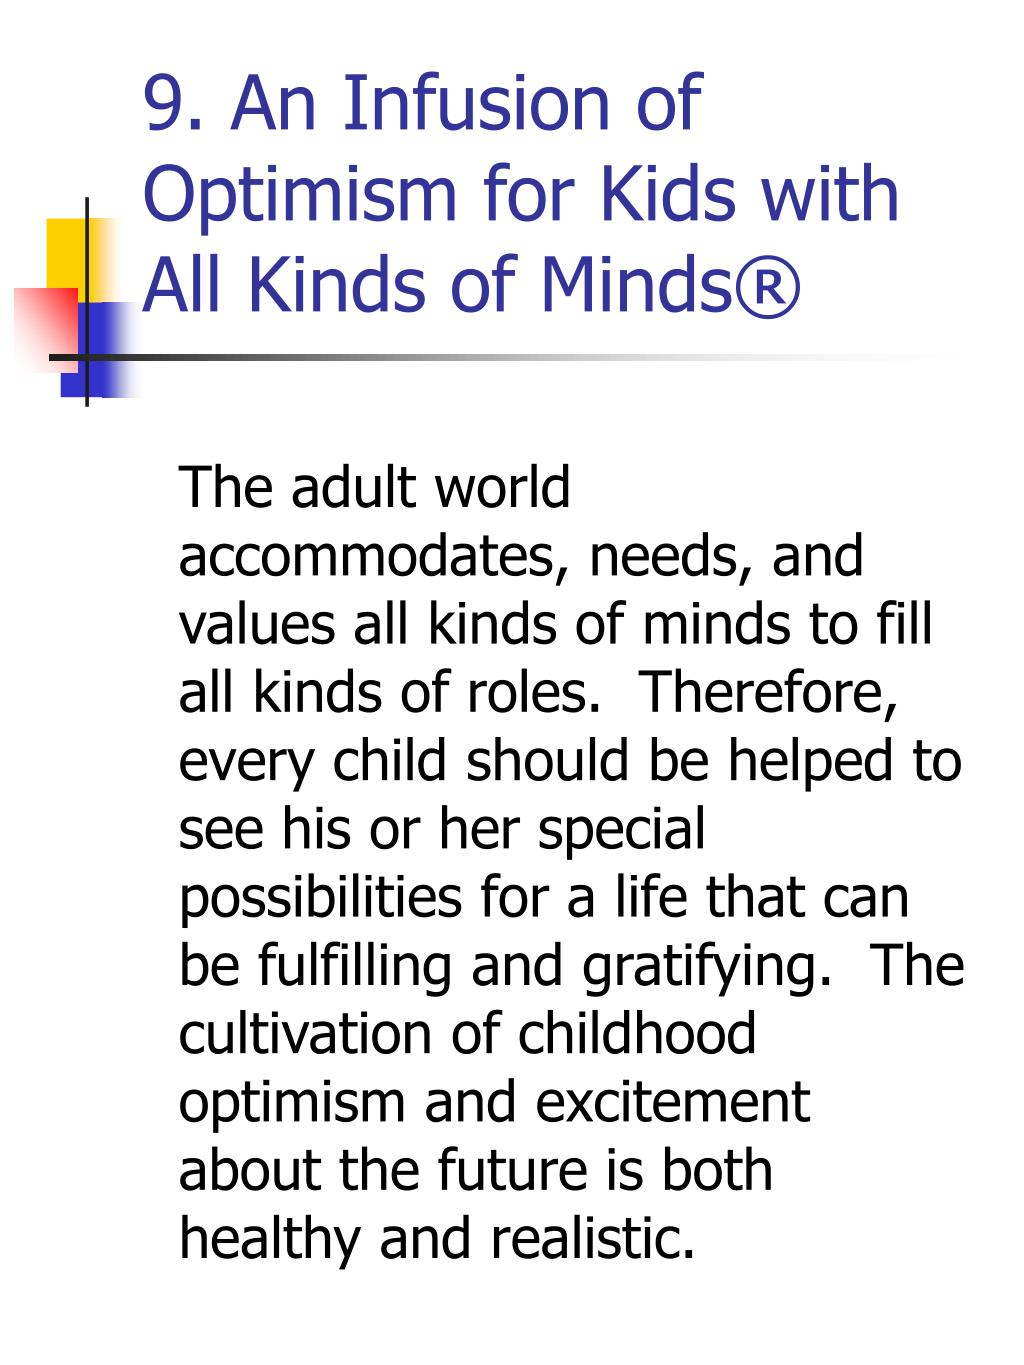 9. An Infusion of Optimism for Kids with All Kinds of Minds®